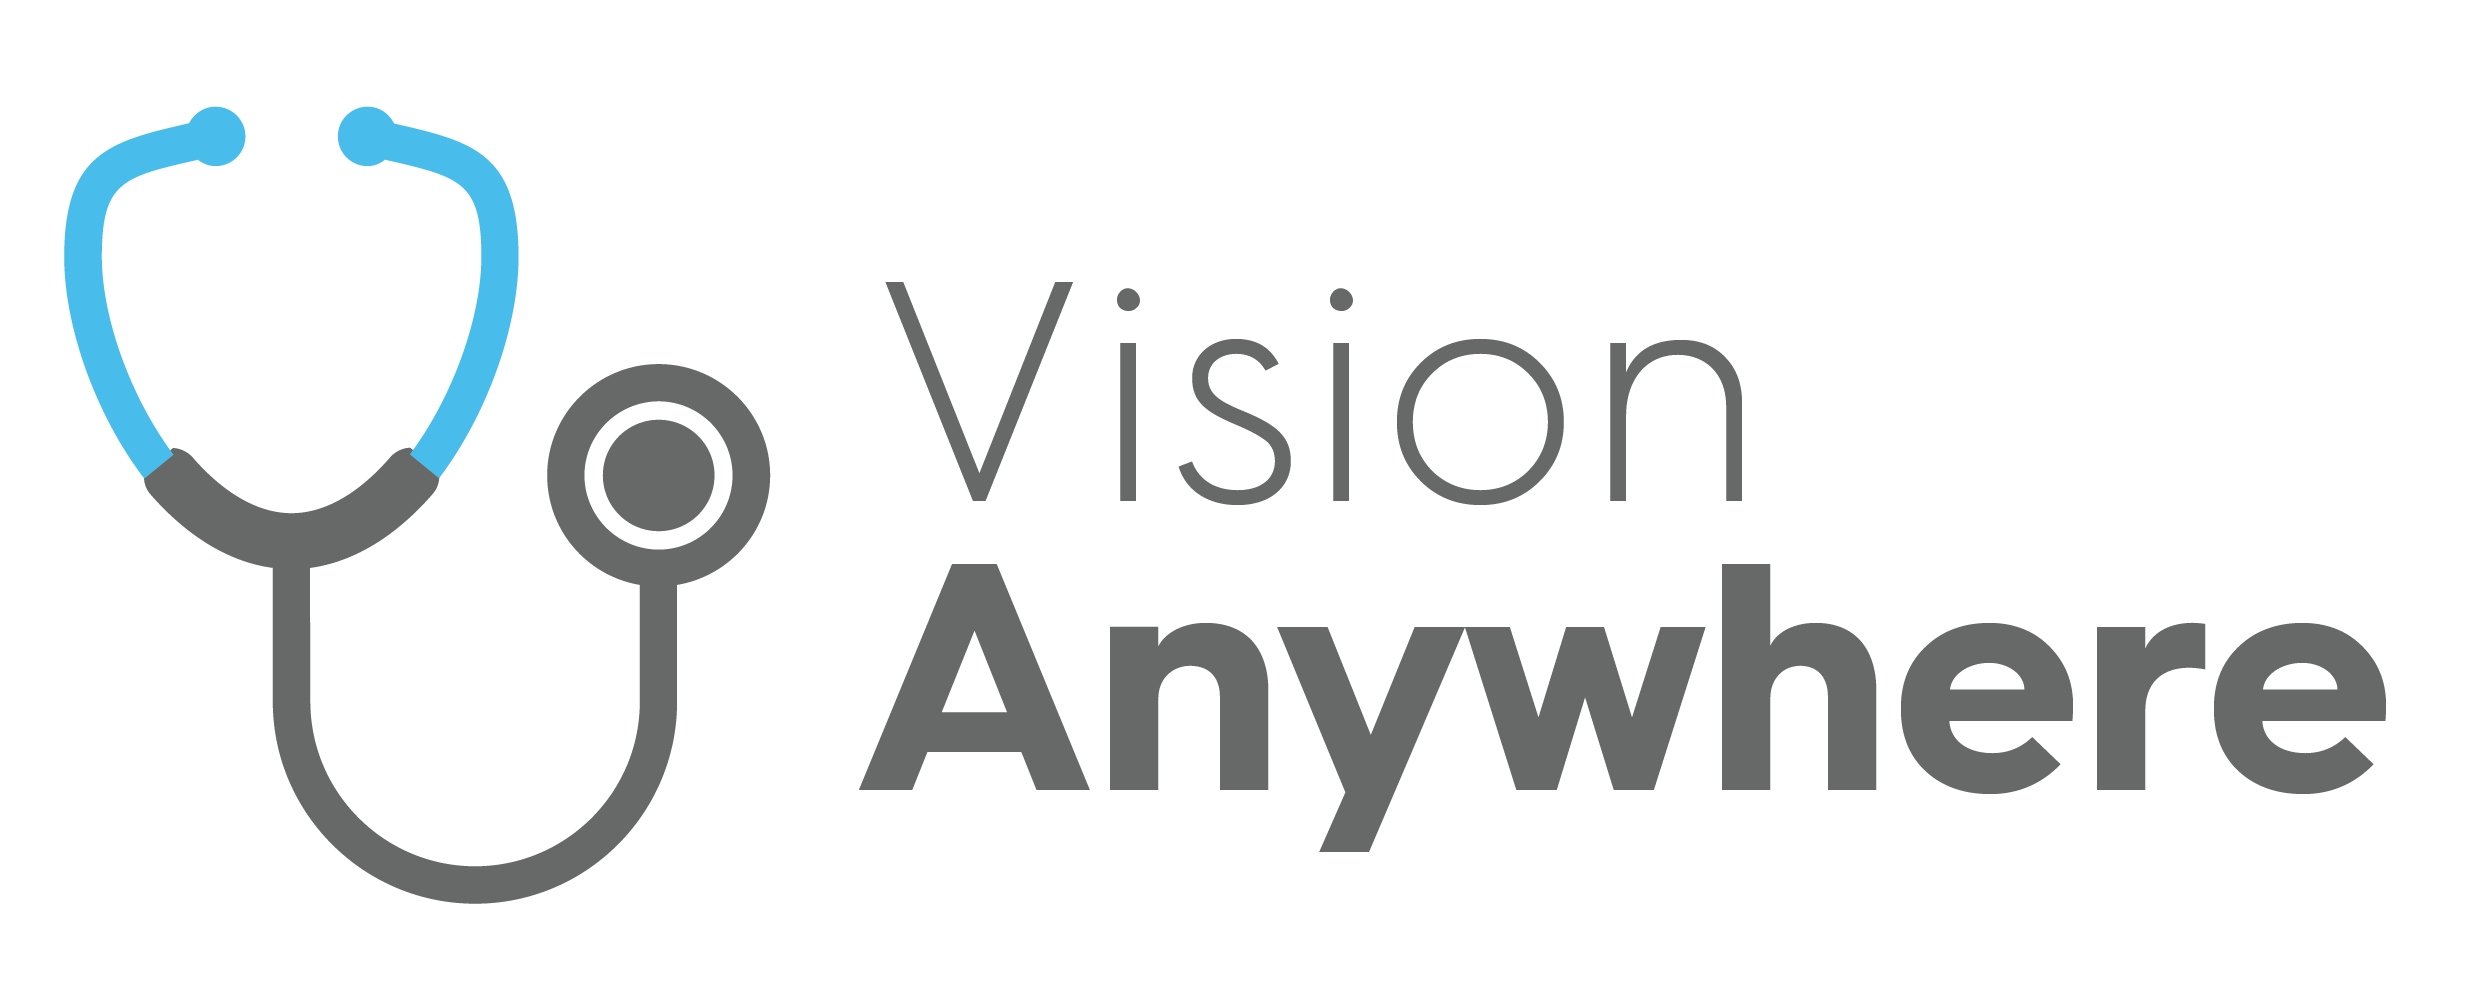 CHS_Vision Anywhere logo